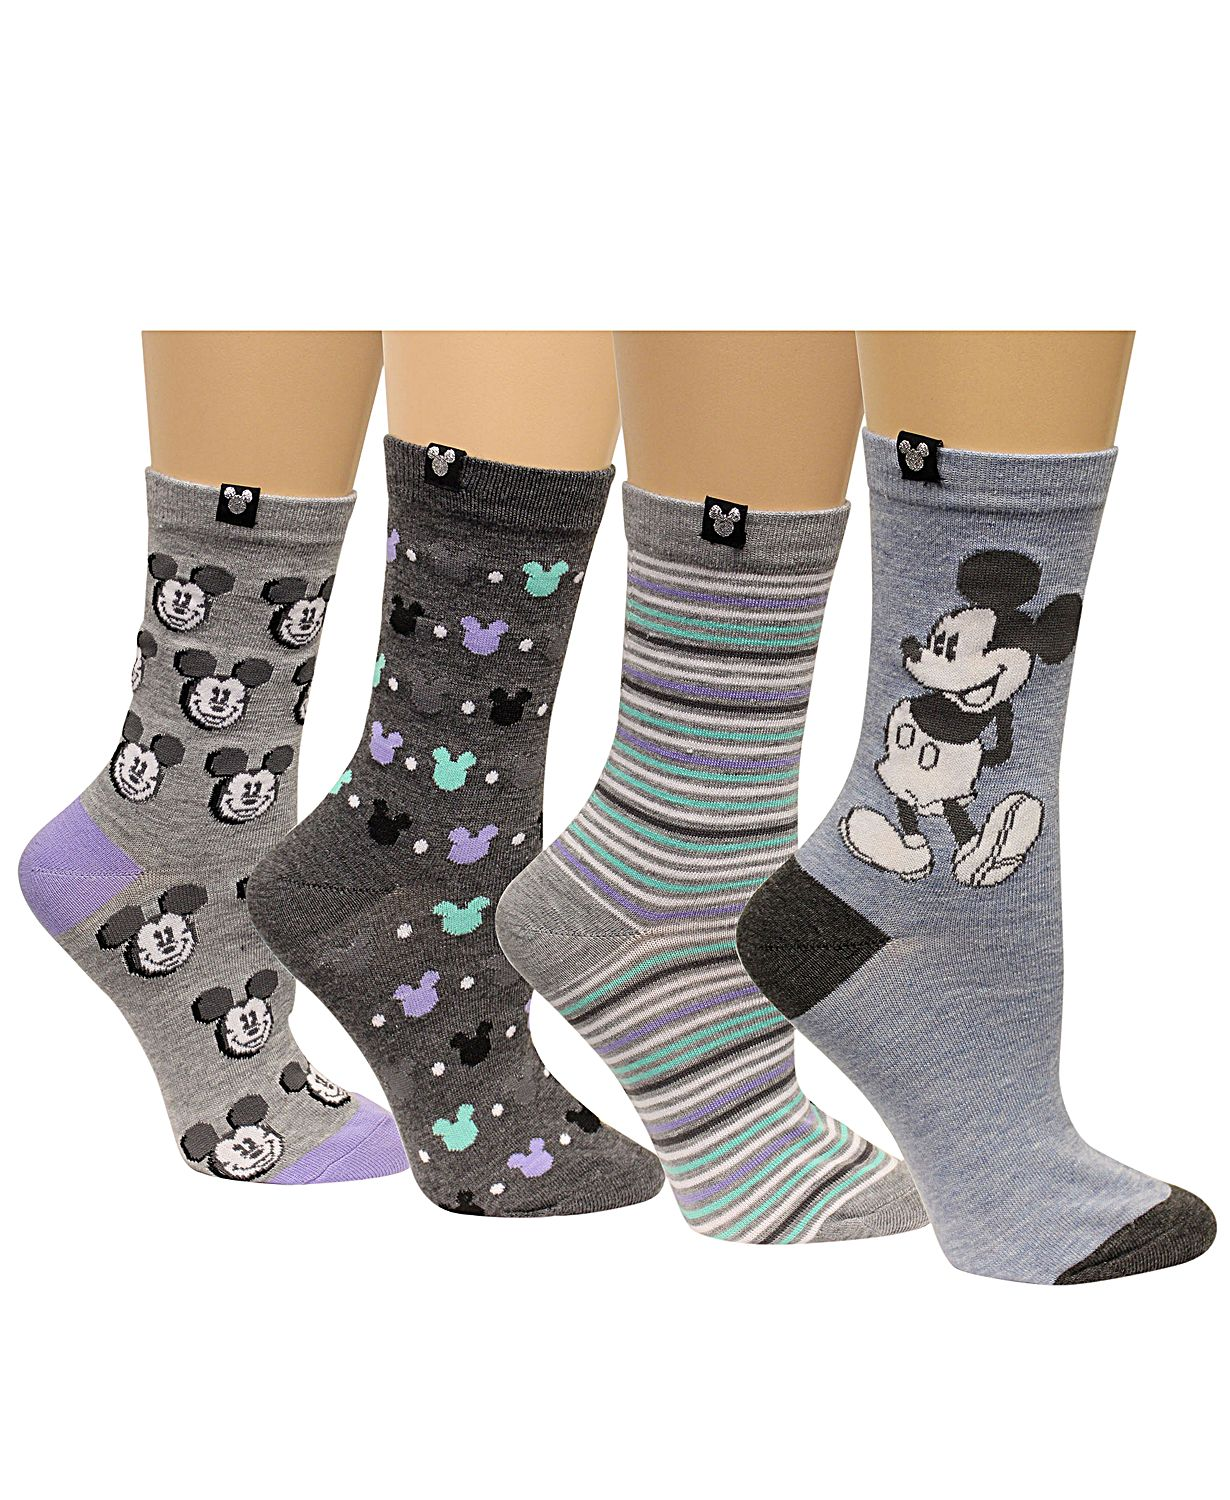 Disney Women's 4 Pack Assorted Mickey Mouse Crew Socks